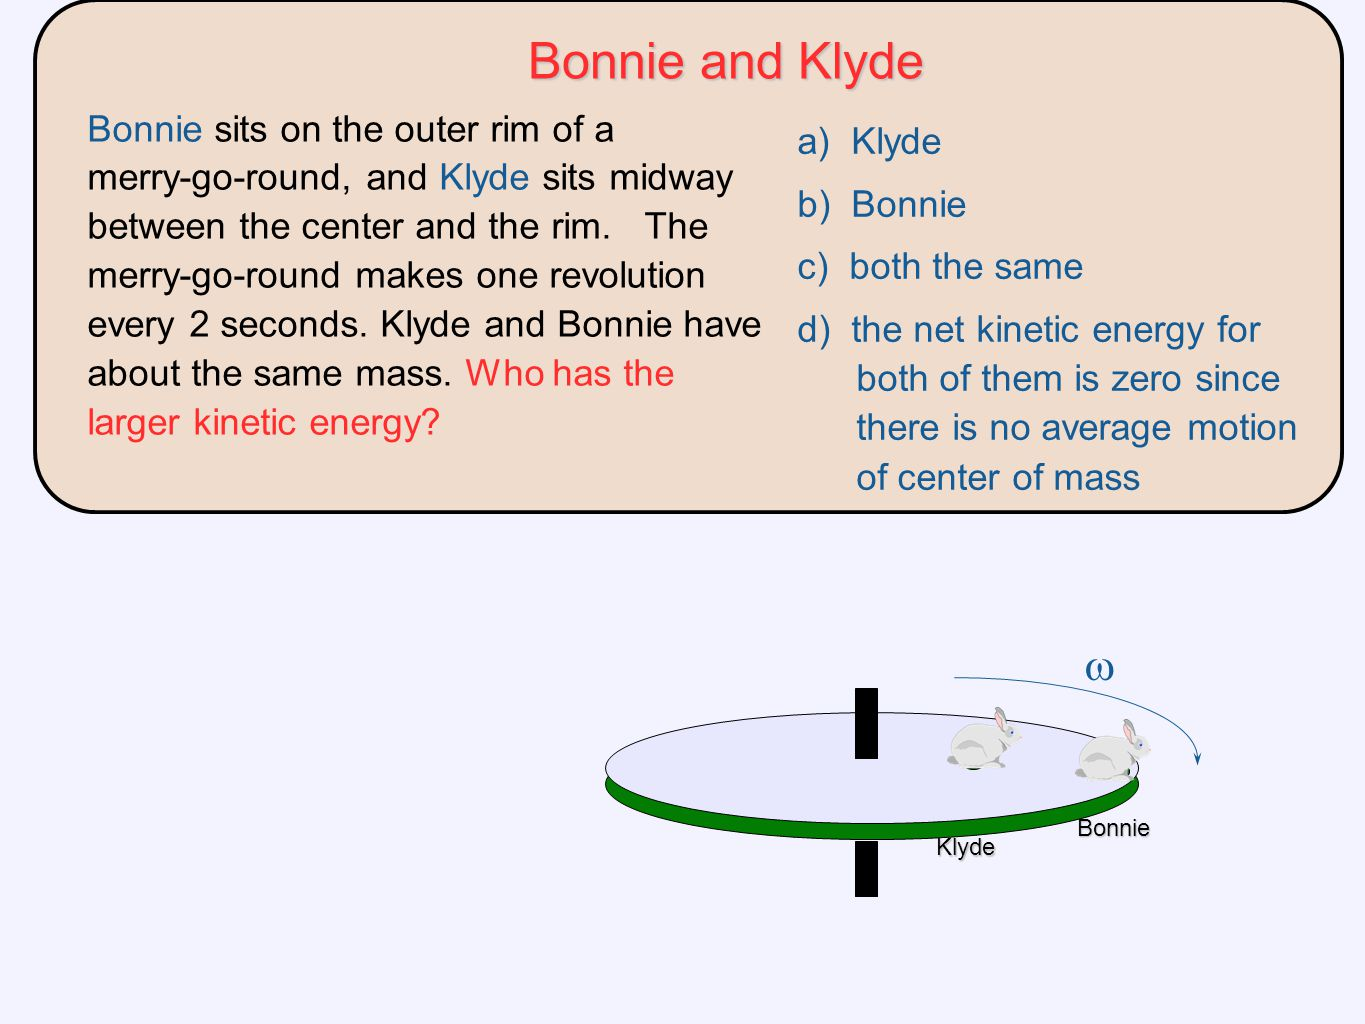 Bonnie and Klyde Bonnie Klyde a) Klyde b) Bonnie c) both the same d) the net kinetic energy for both of them is zero since there is no average motion